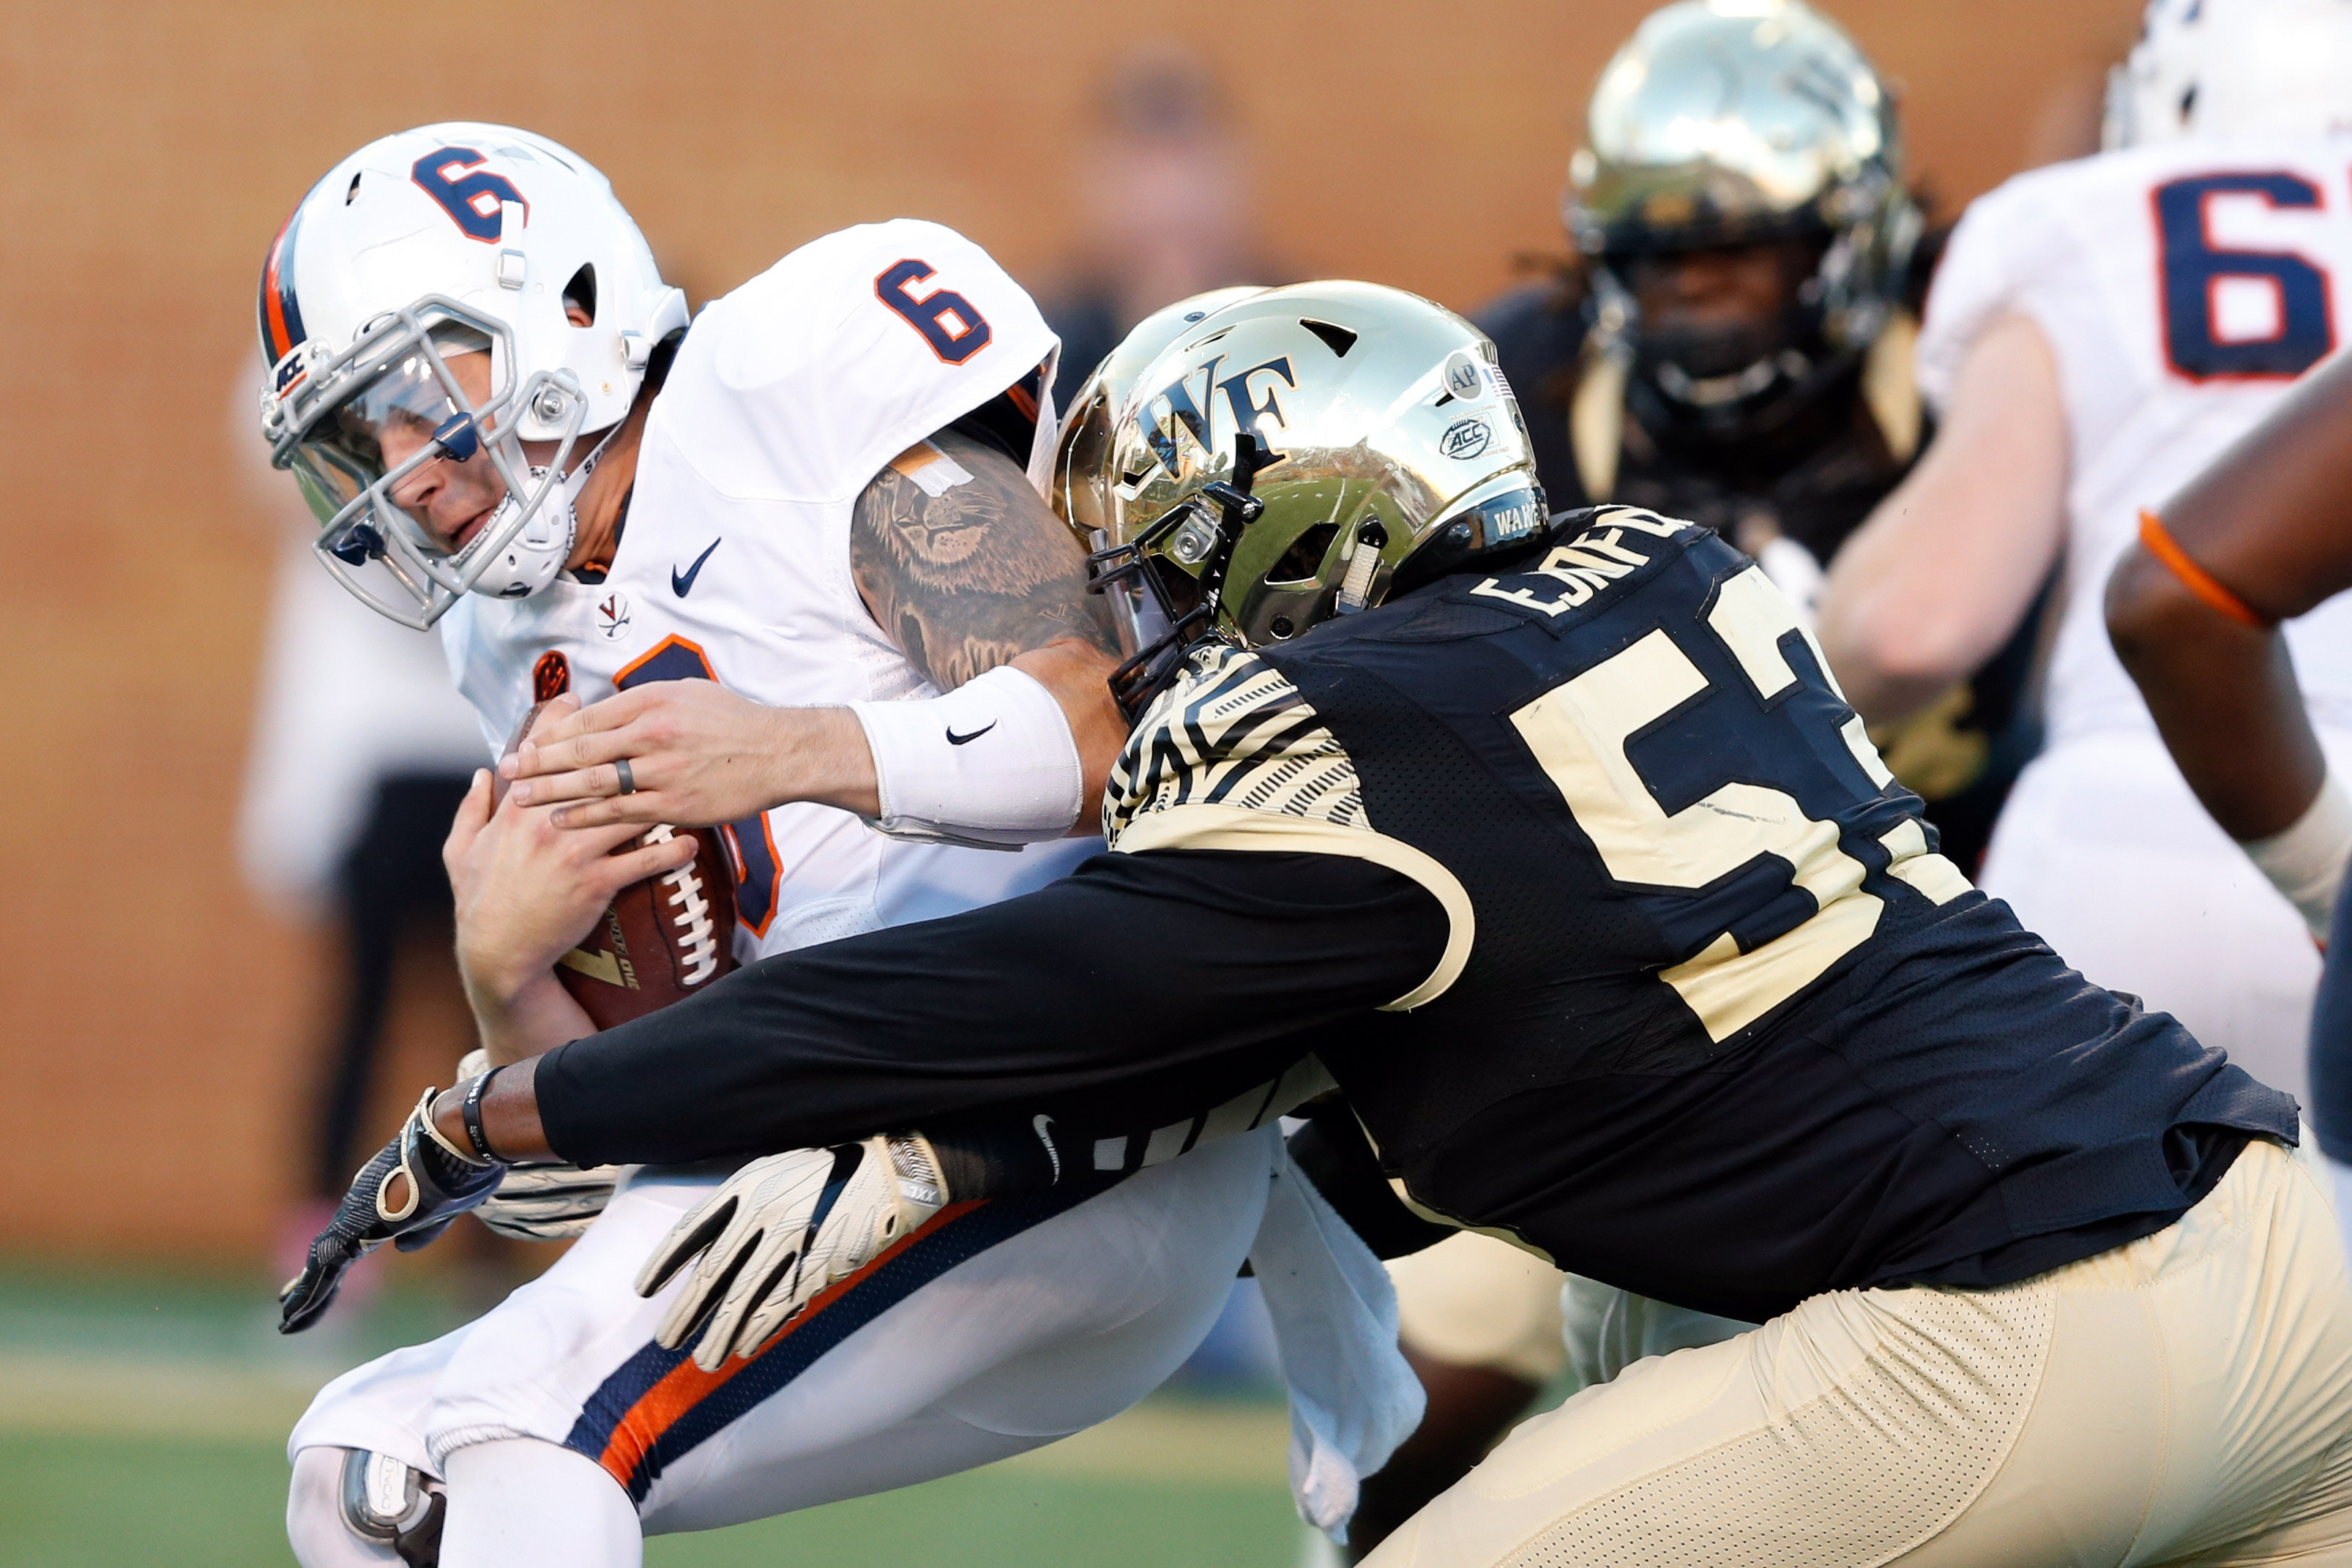 Nov 5, 2016; Winston-Salem, NC, USA; Virginia Cavaliers quarterback Kurt Benkert (6) gets sacked by Wake Forest Demon Deacons defensive lineman Duke Ejiofor (53) in the fourth quarter at BB&T Field. The Demon Deacons defeated the Cavaliers 27-20. Mandatory Credit: Jeremy Brevard-USA TODAY Sports